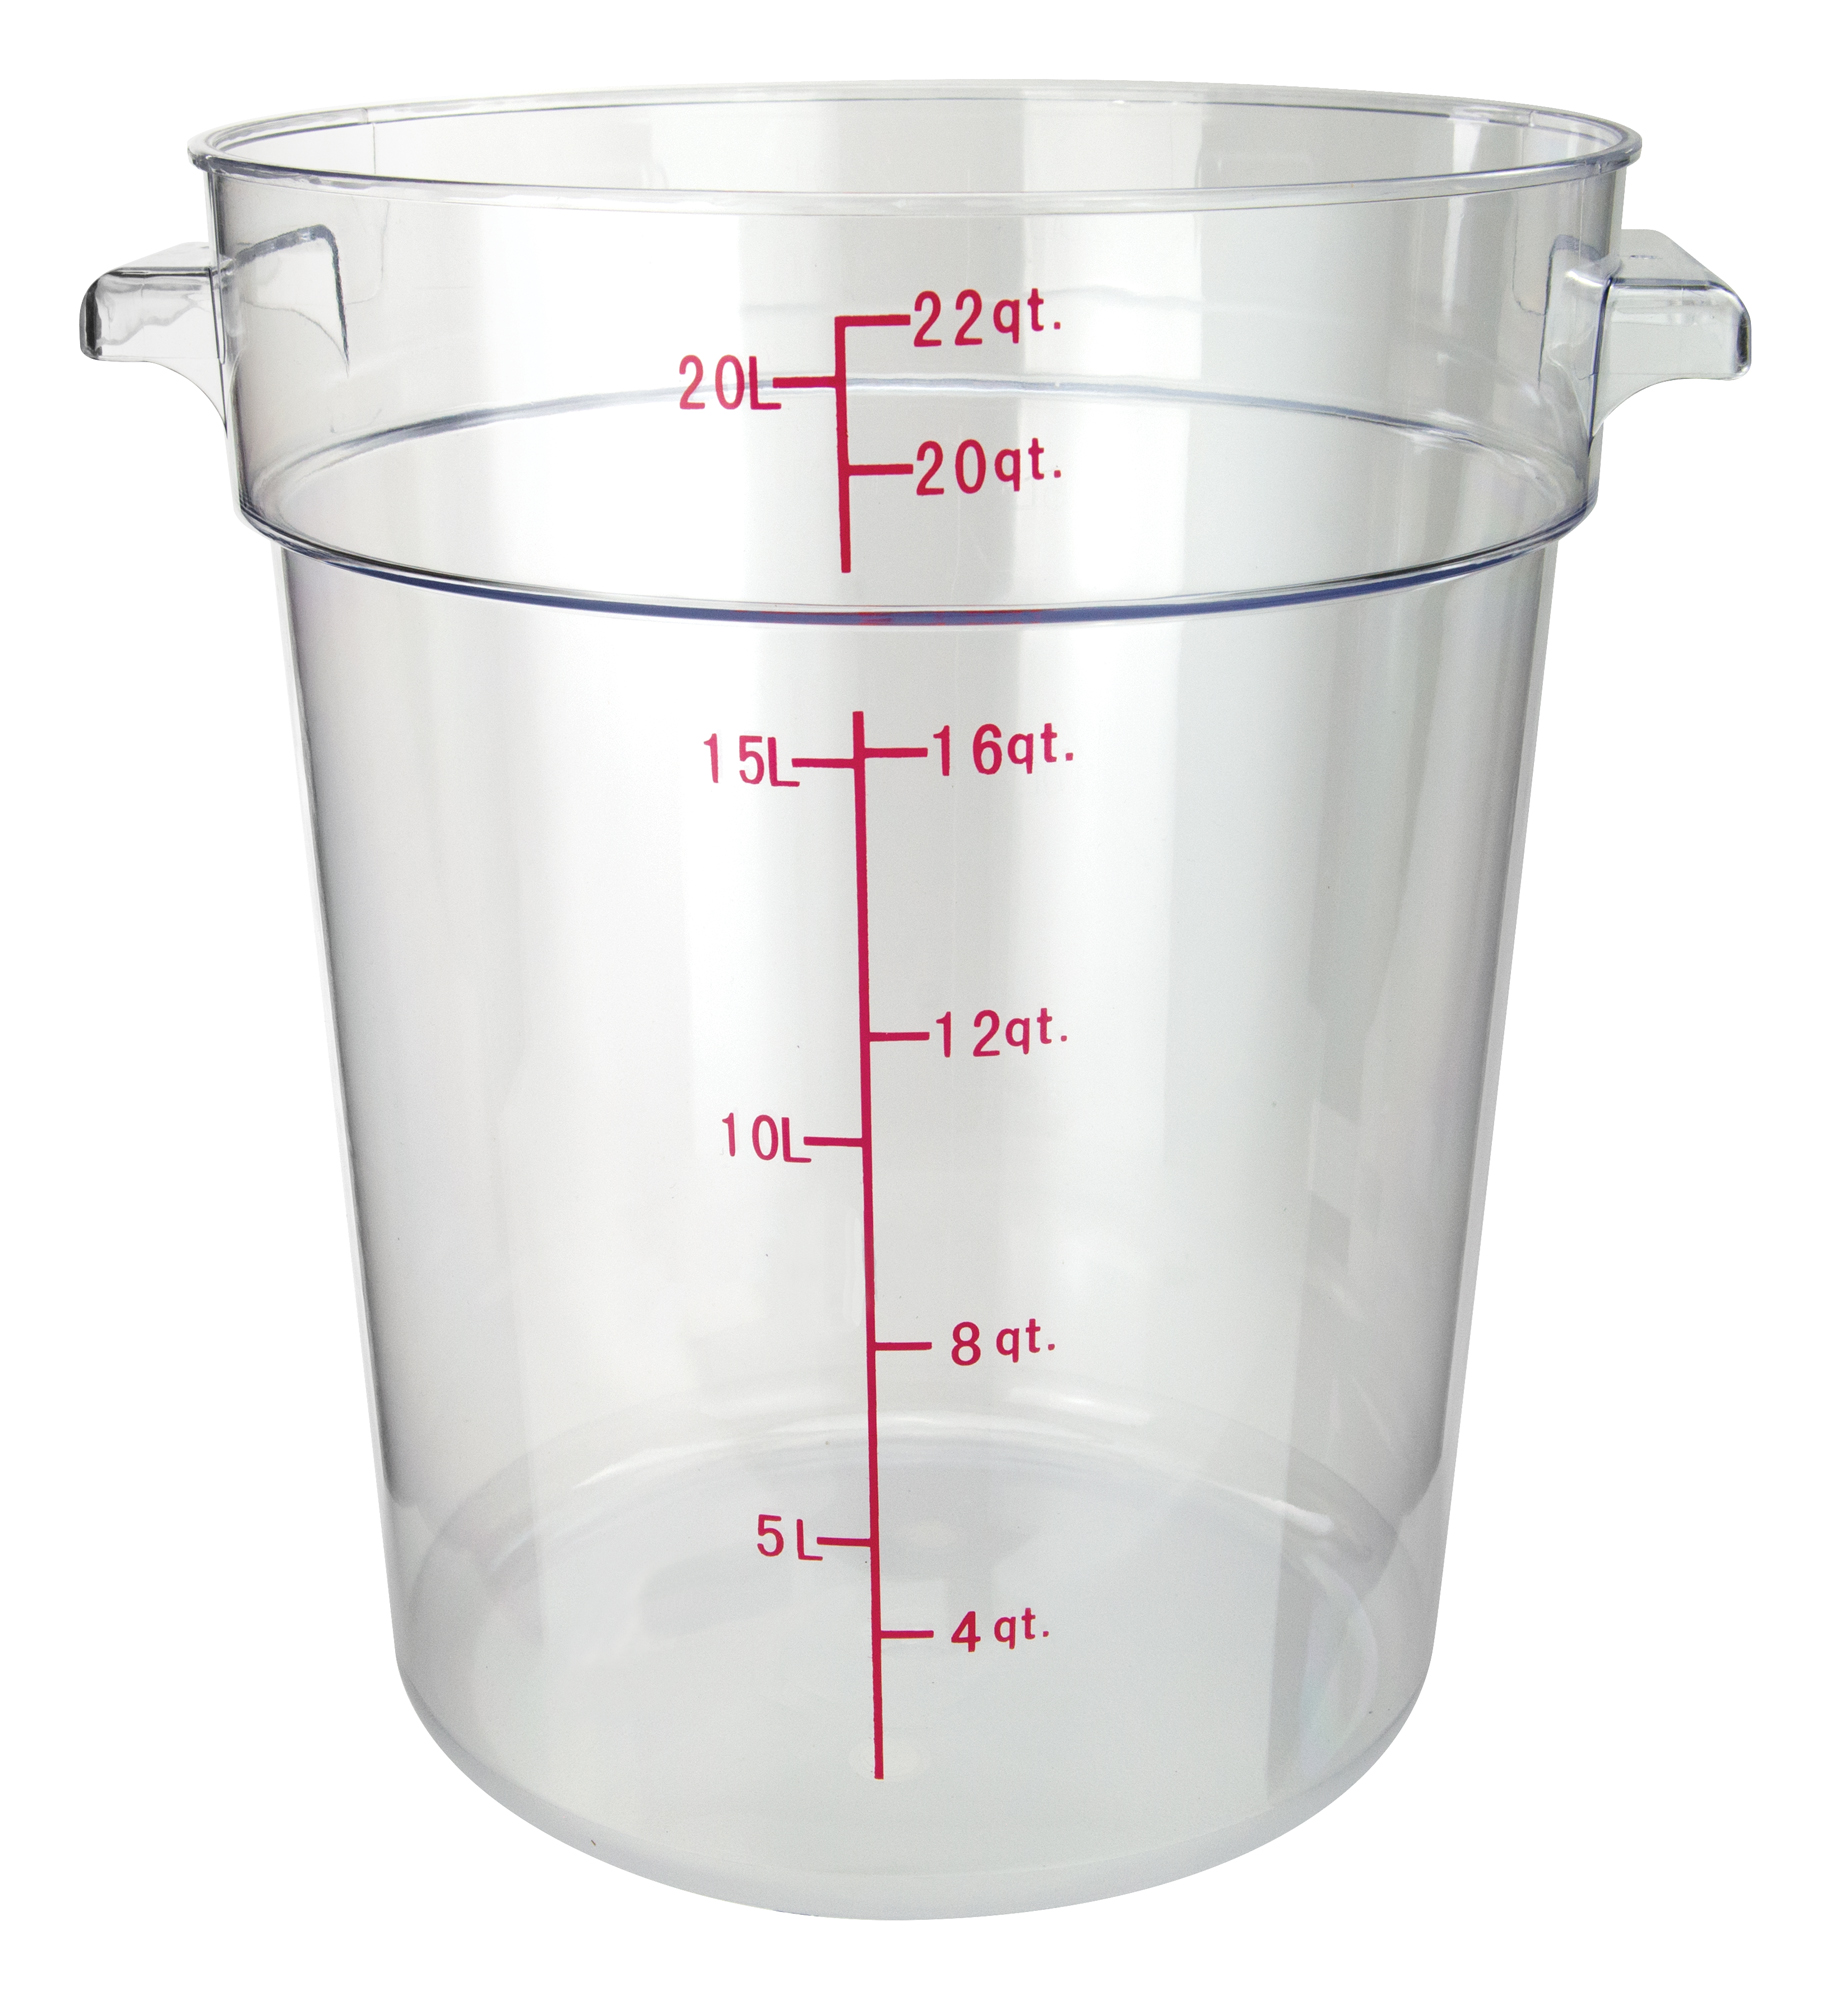 Winco PCRC-22 round food storage containers